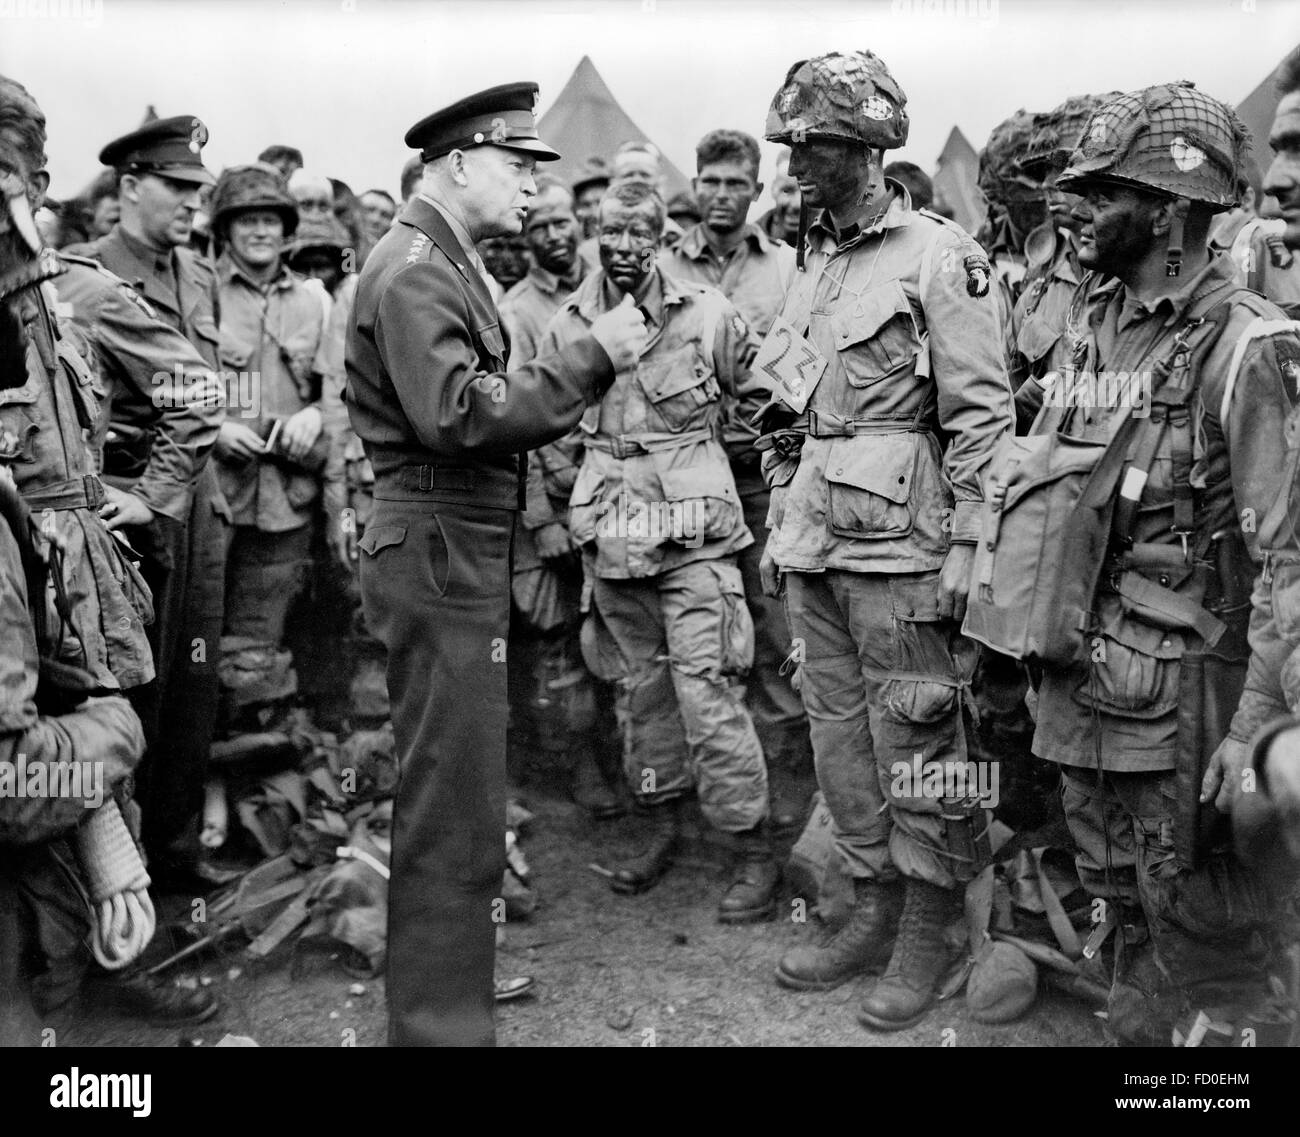 Dwight Eisenhower. General Dwight D Eisenhower, Supreme Allied Commander Europe, talking with American paratroopers - Stock Image